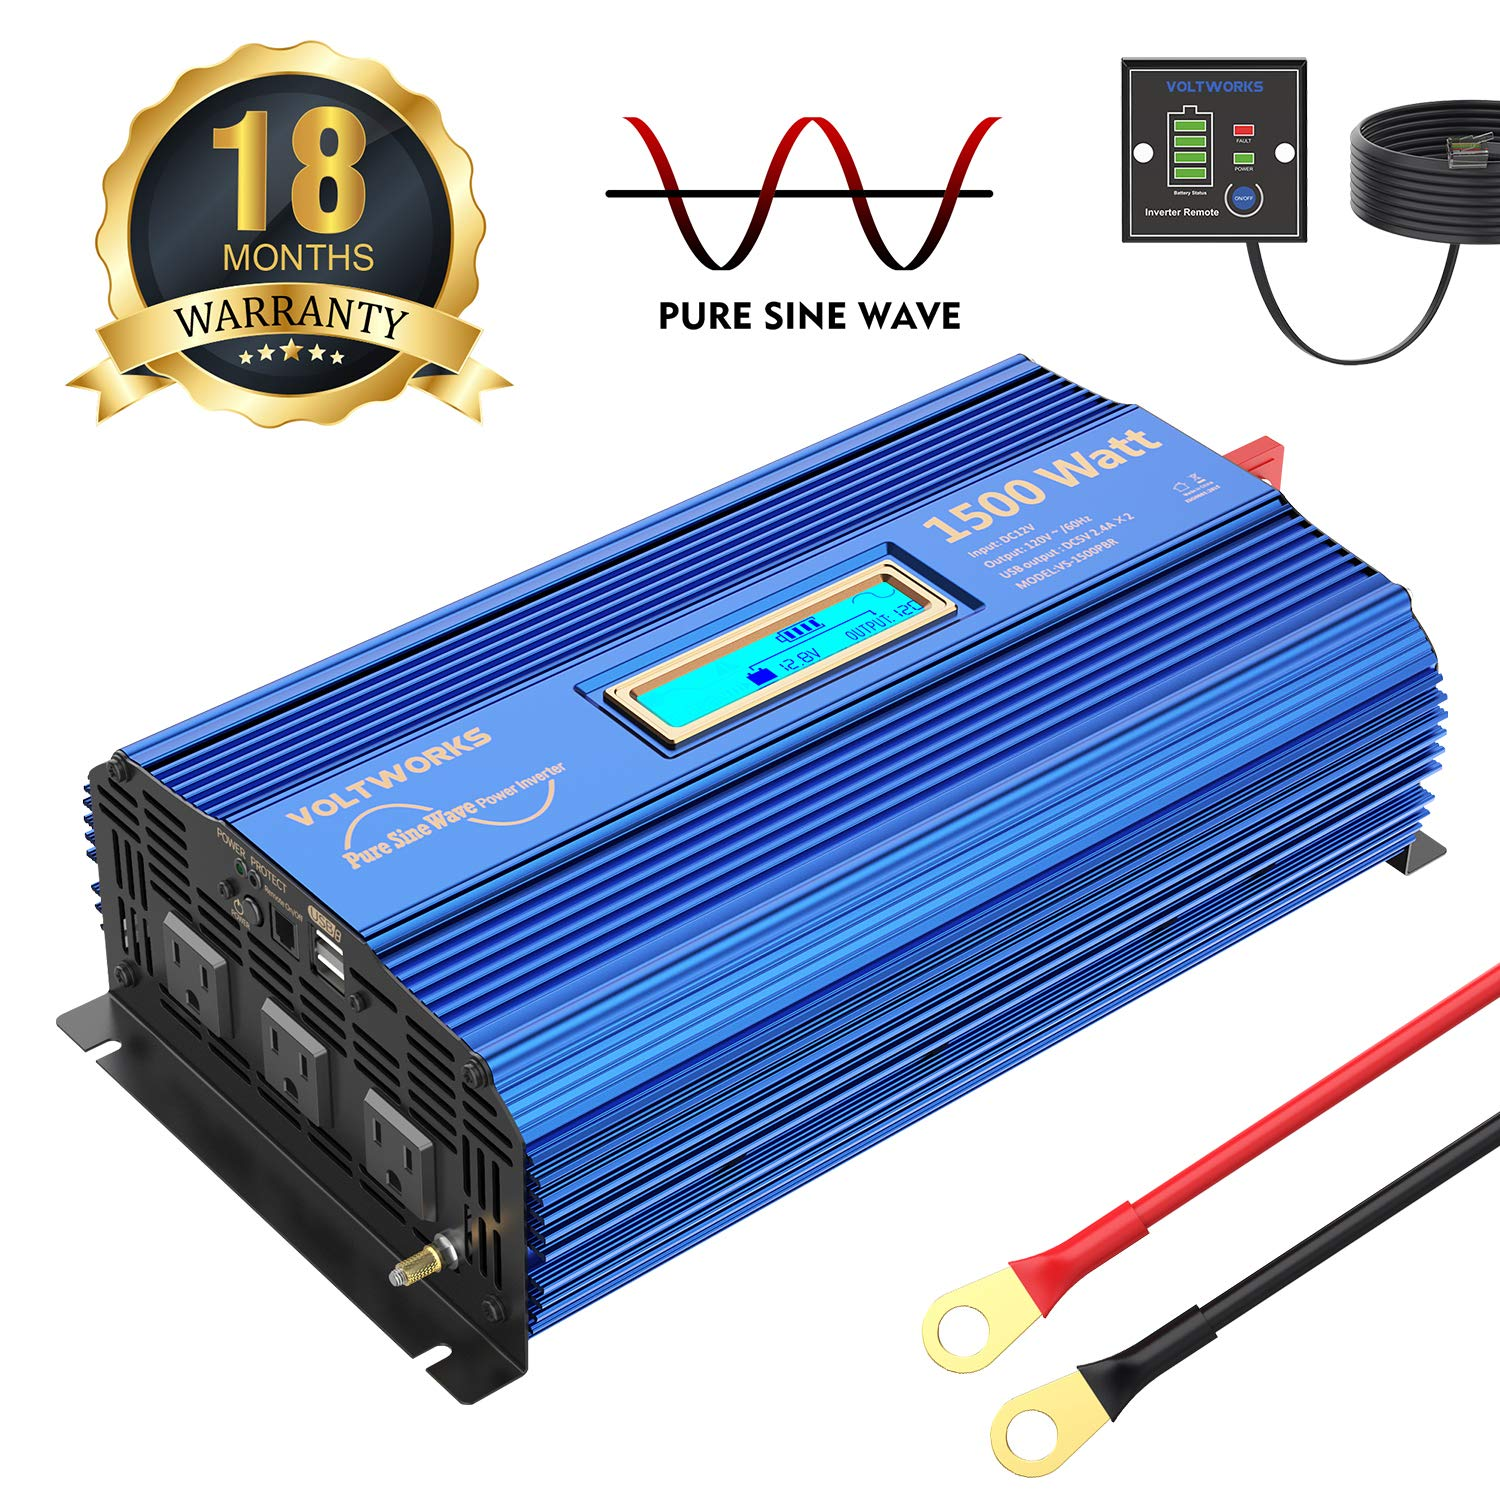 5 Best Power Inverter For Home 2021 [In-Depth Review] 3